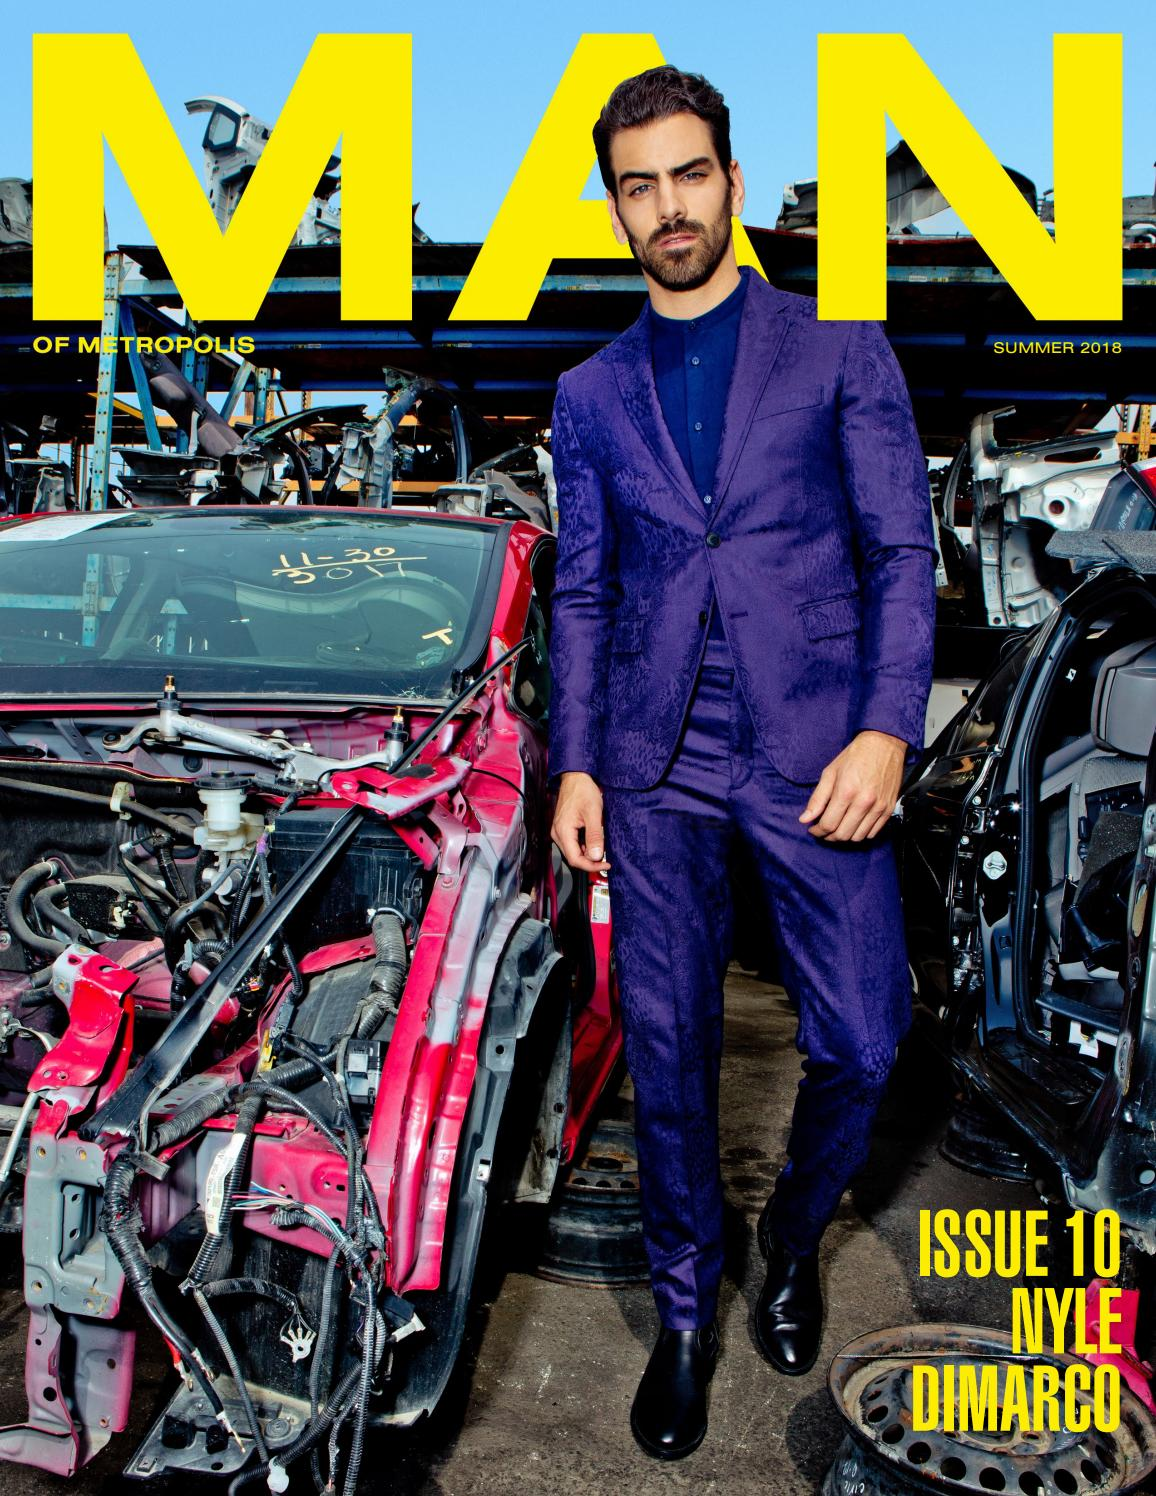 Issue 10 Nyle Dimarco By Man Of Metropolis Issuu 4 You Choir Collar Dress Orange Putih